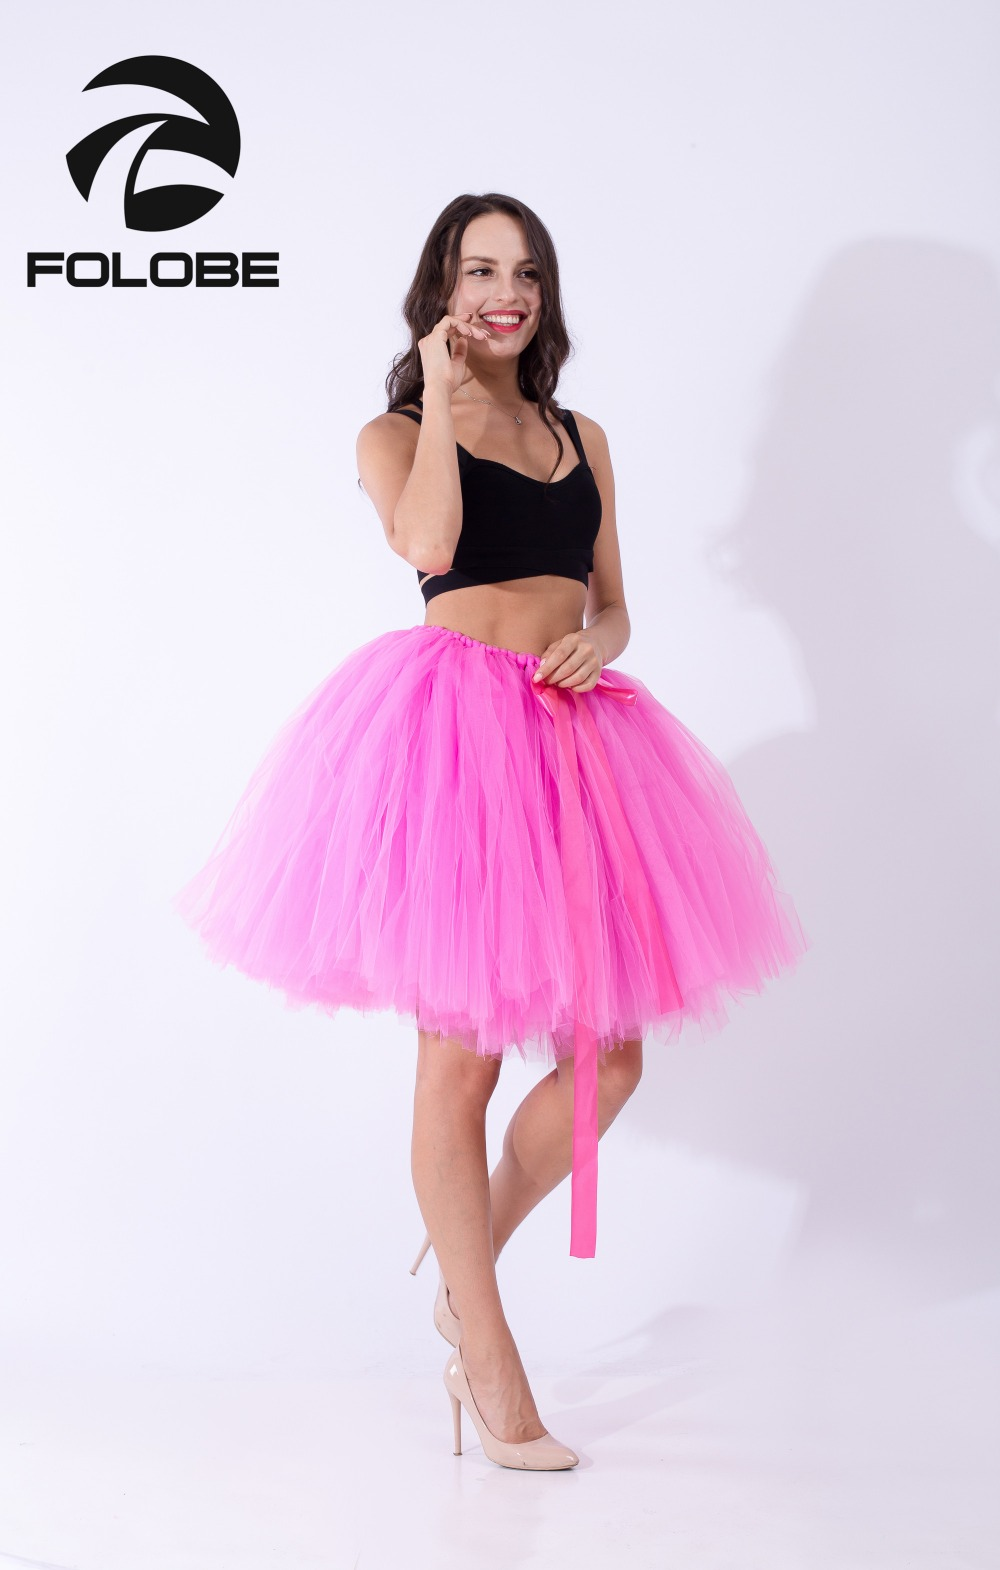 f9906c6a82 Detail Feedback Questions about FOLOBE Hot Pink Handmade Midi Tulle ...